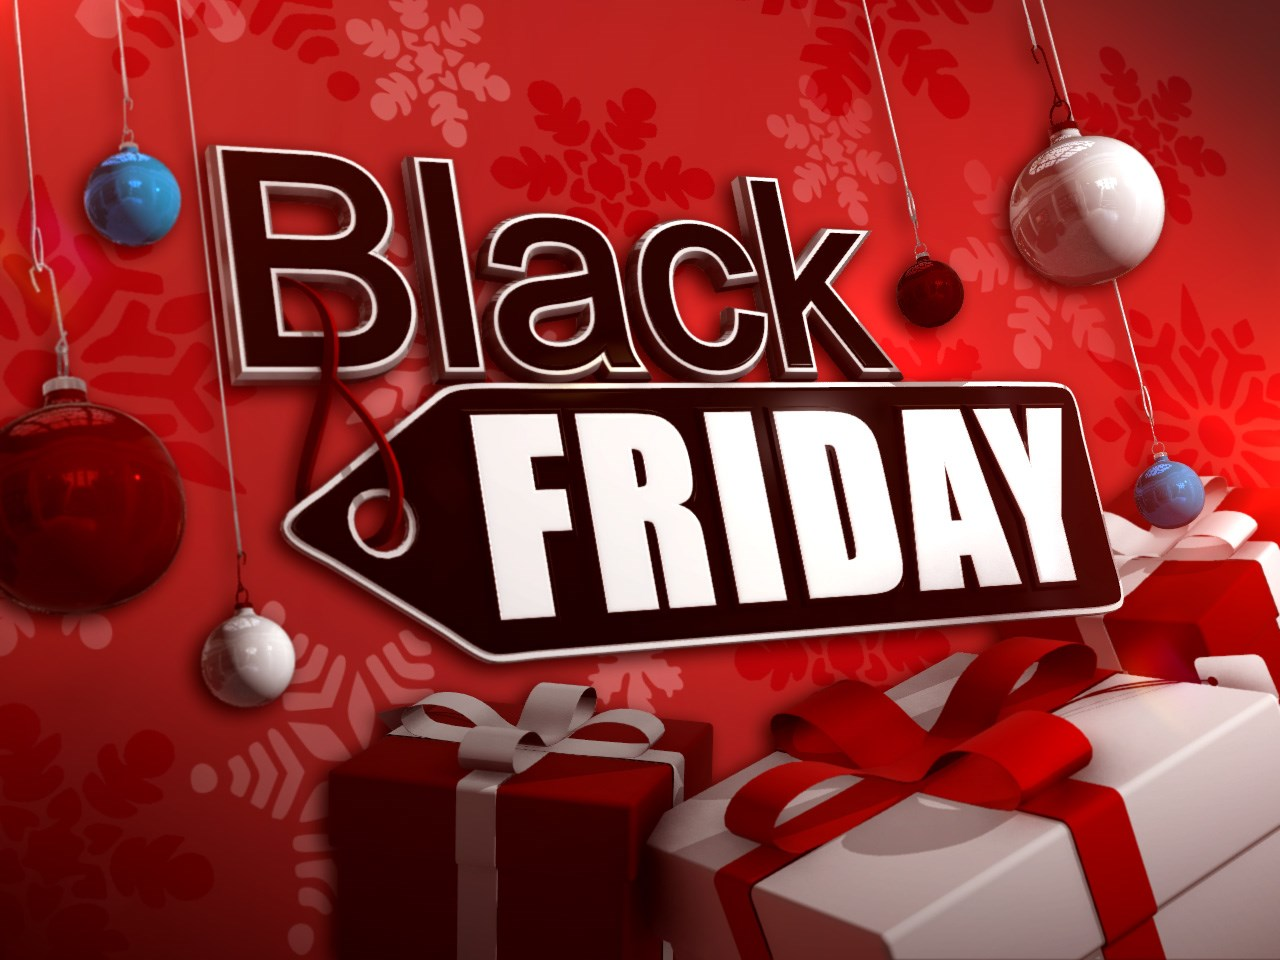 black friday_1448554990504.jpg